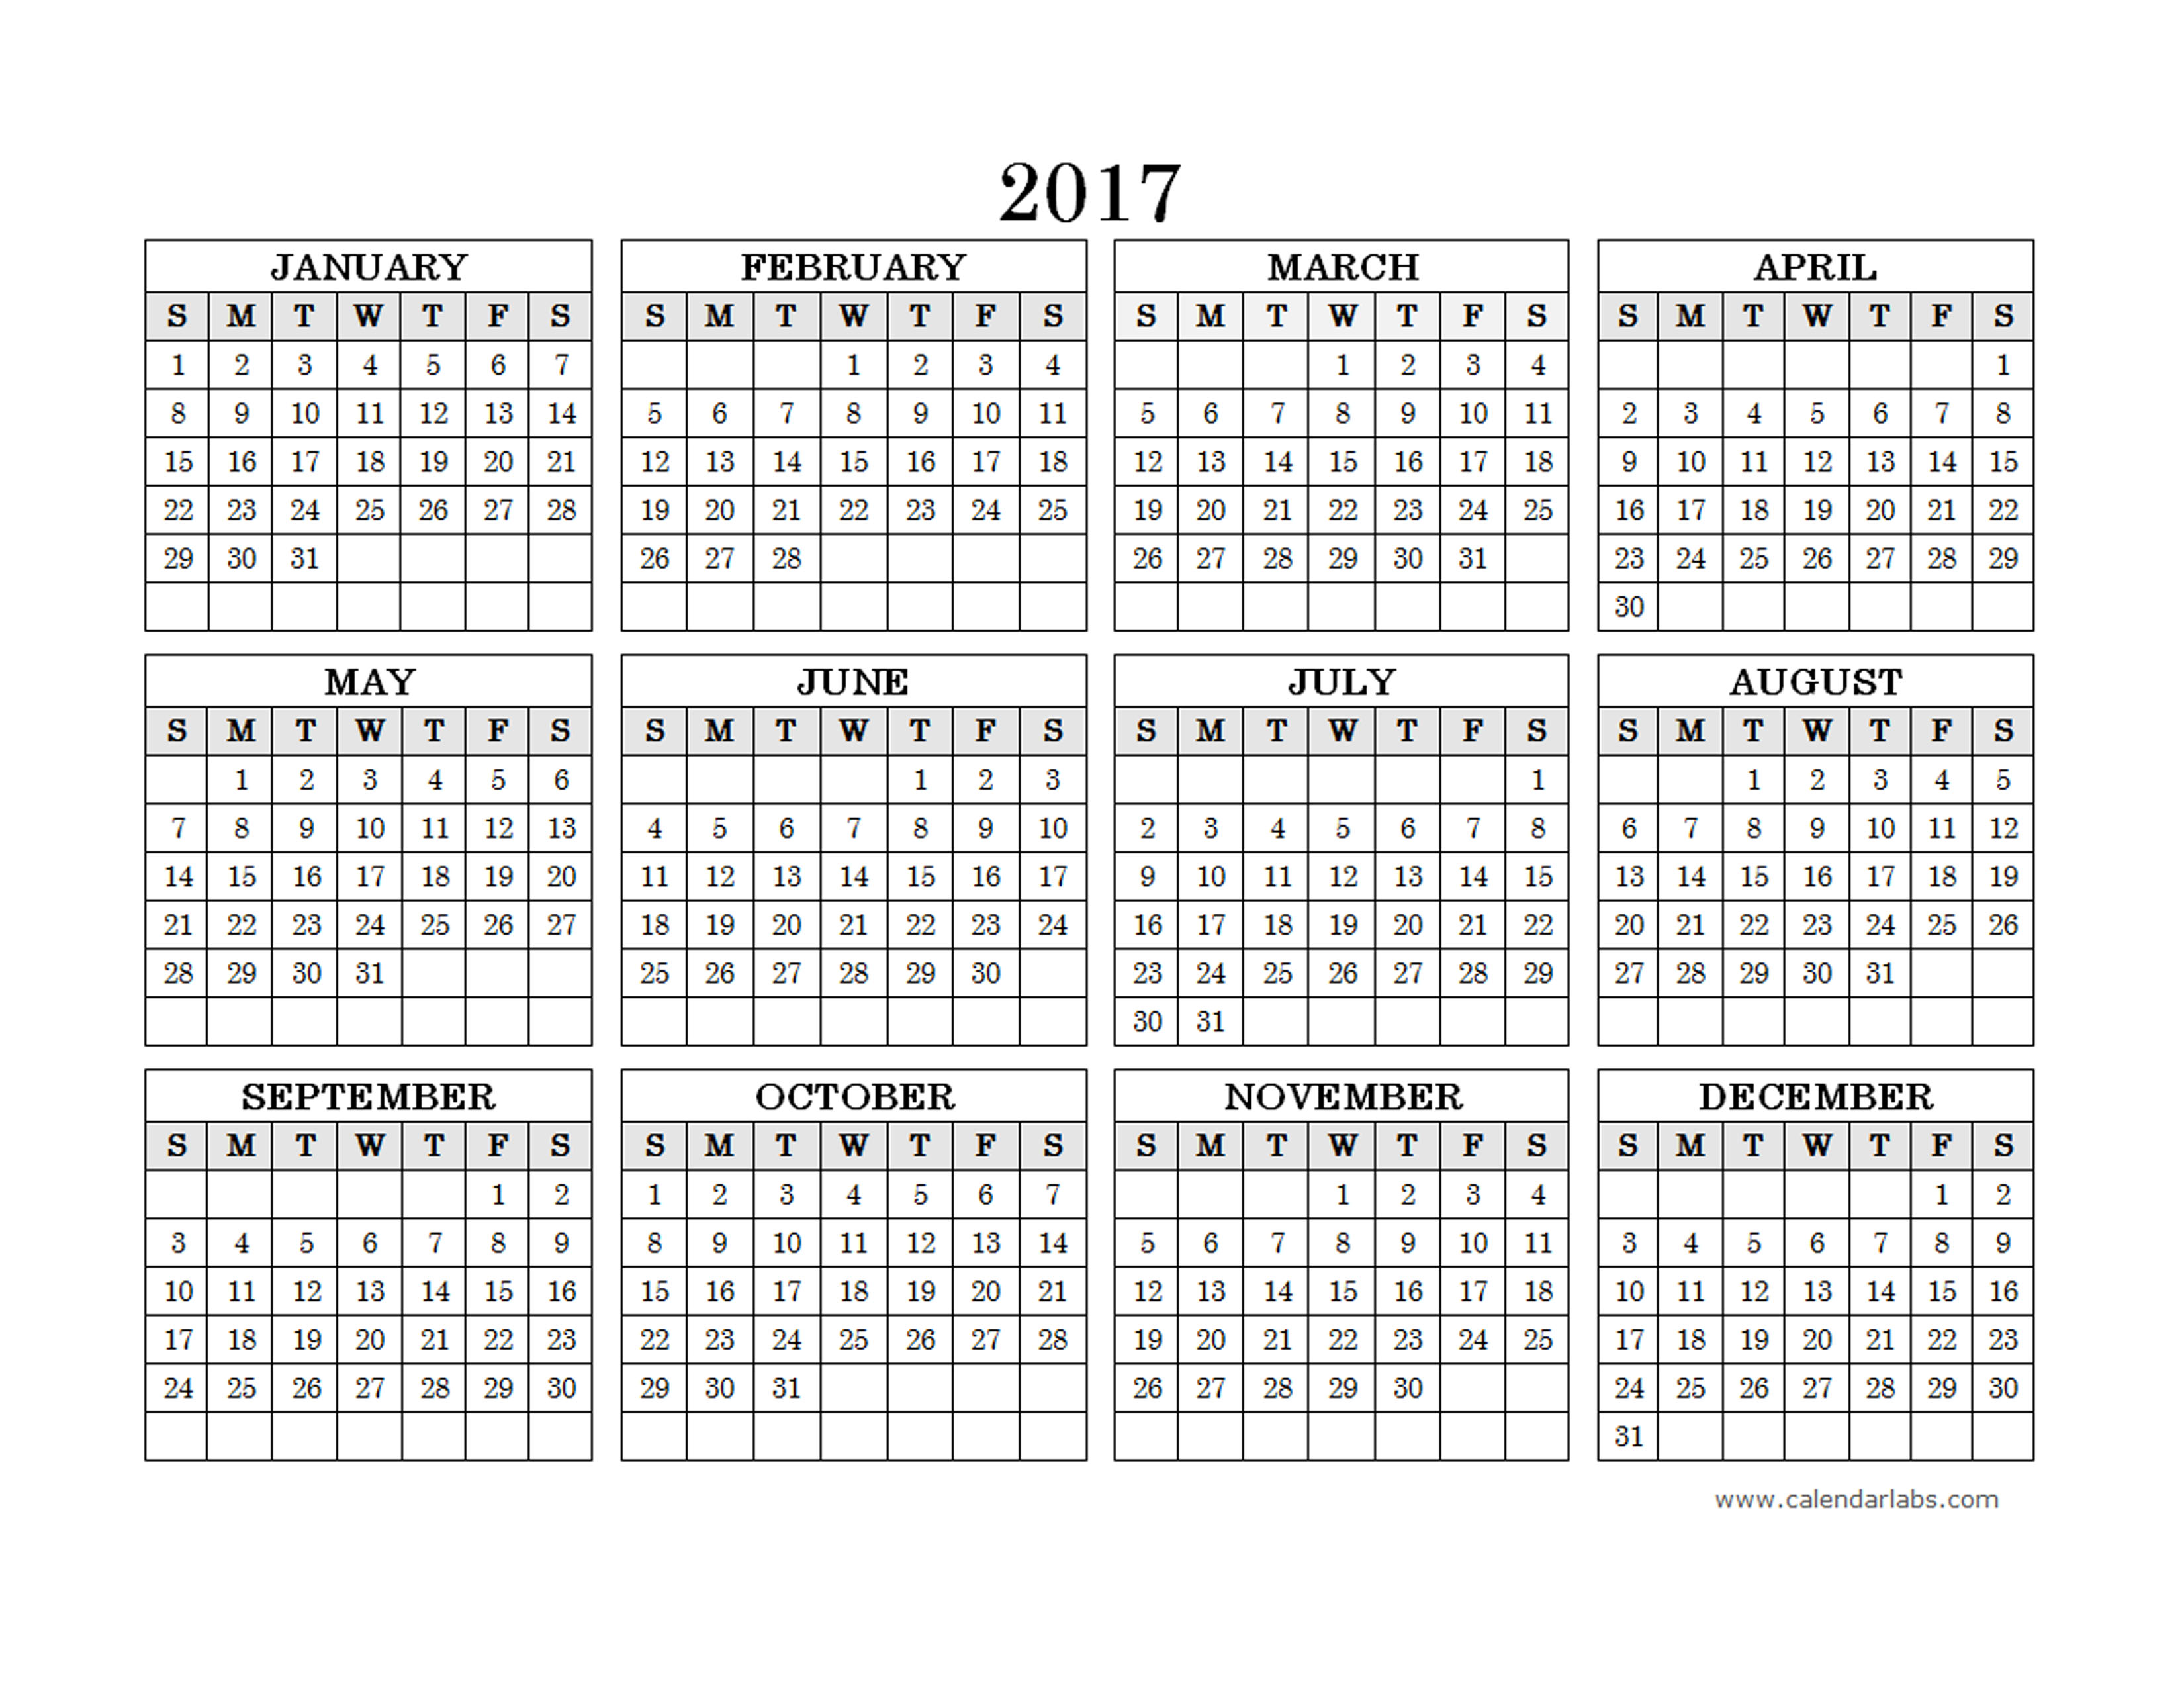 Yearly Calendar New Zealand | Printable Calendar Calendar Labs